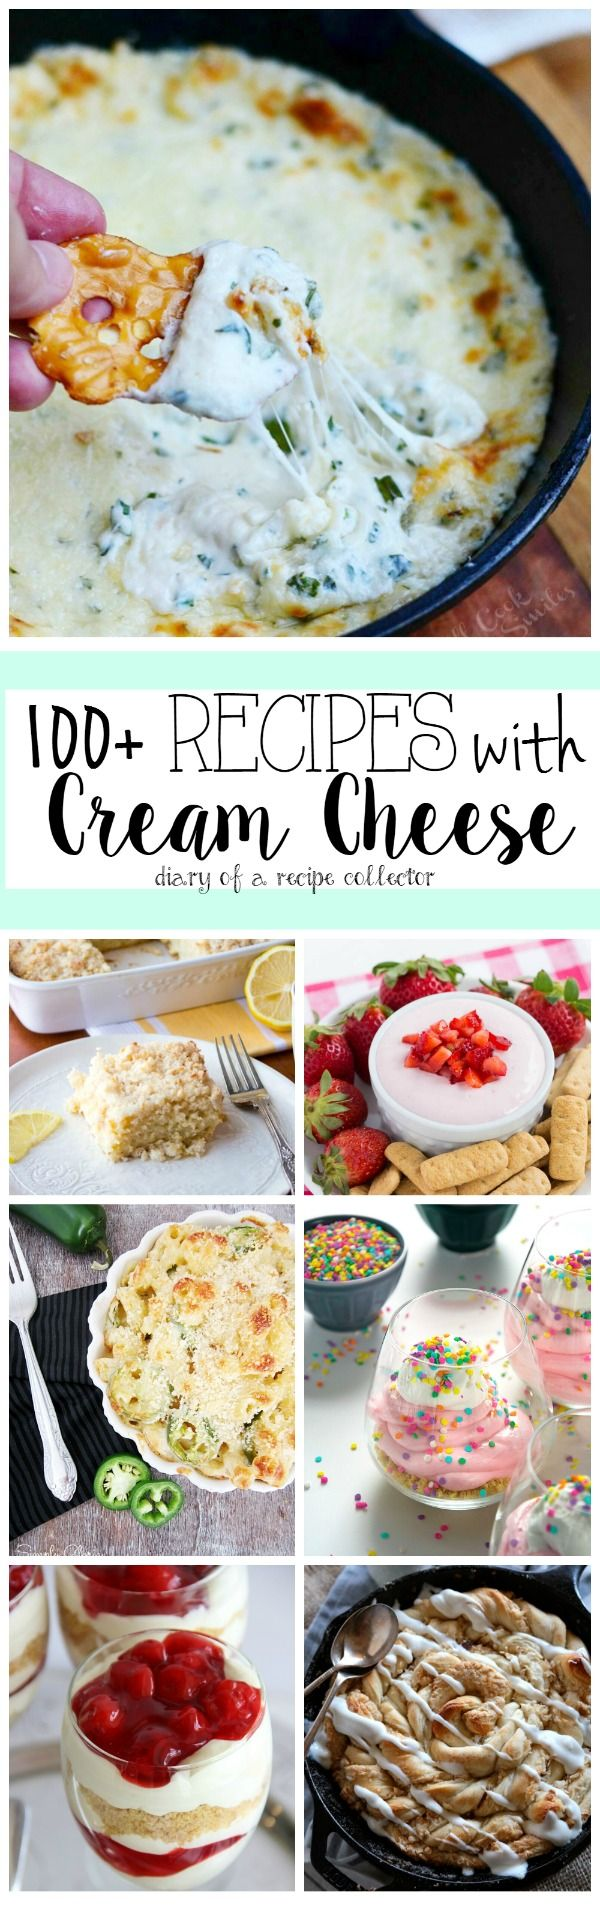 Things that look good to eat: 100+ Recipes with Cream Cheese - Diary of A Recipe...